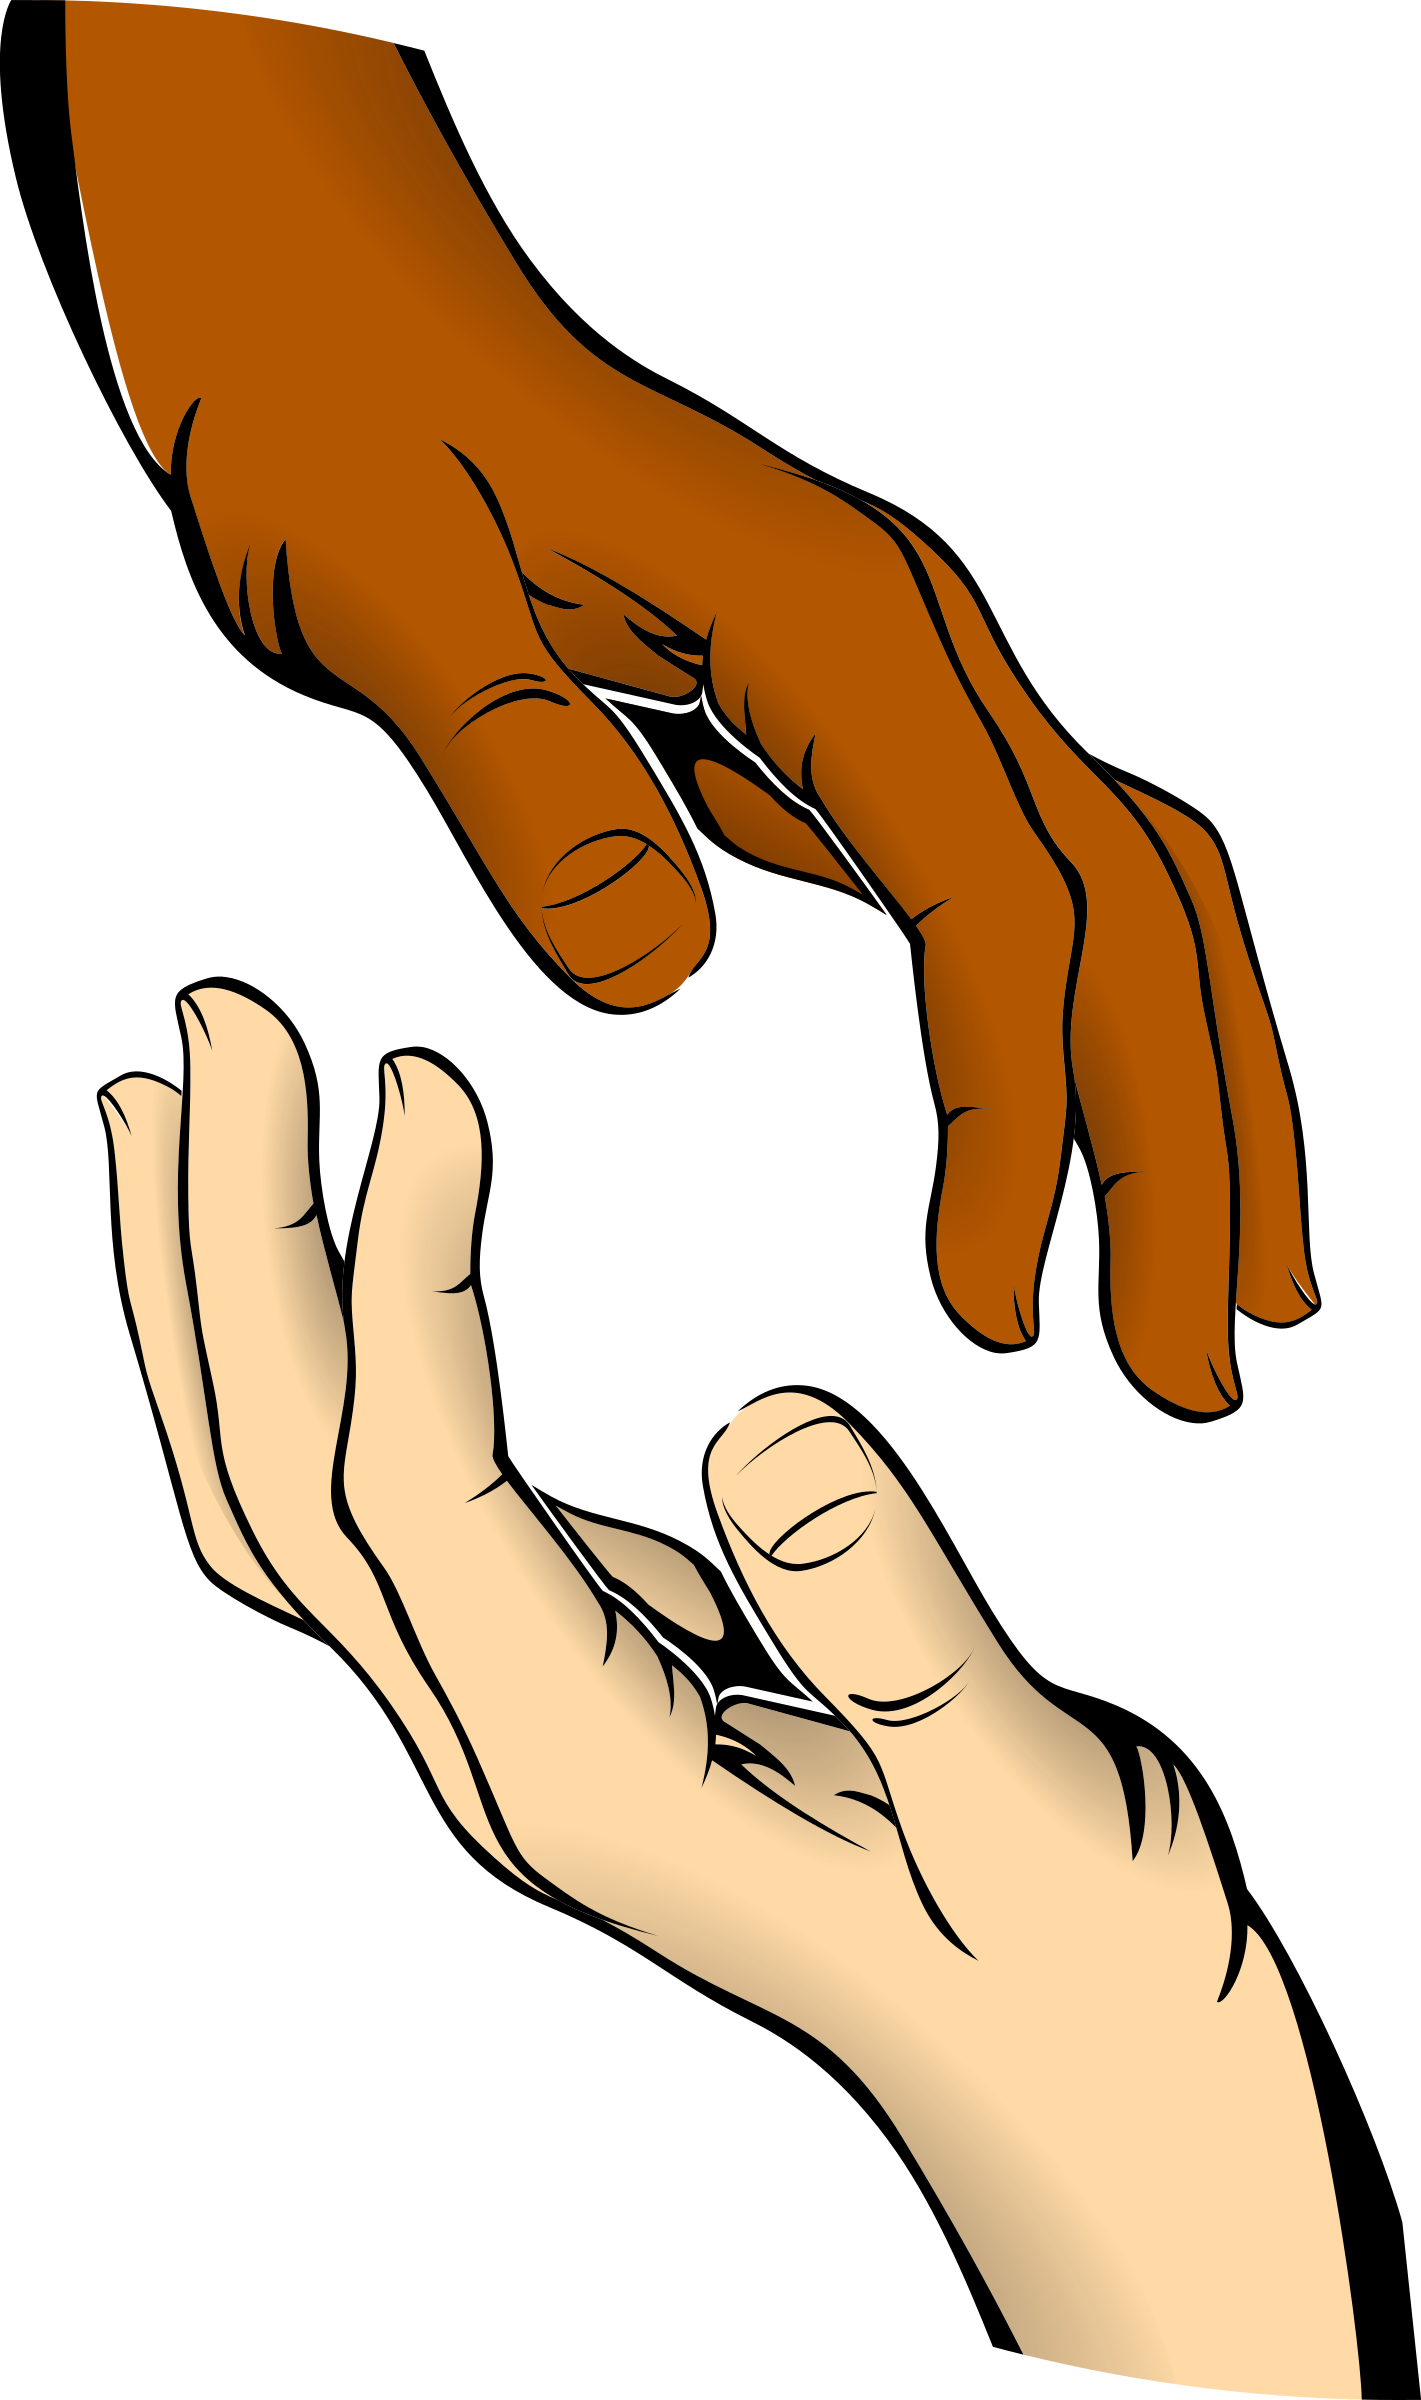 Touch clipart big hand. Hands image png